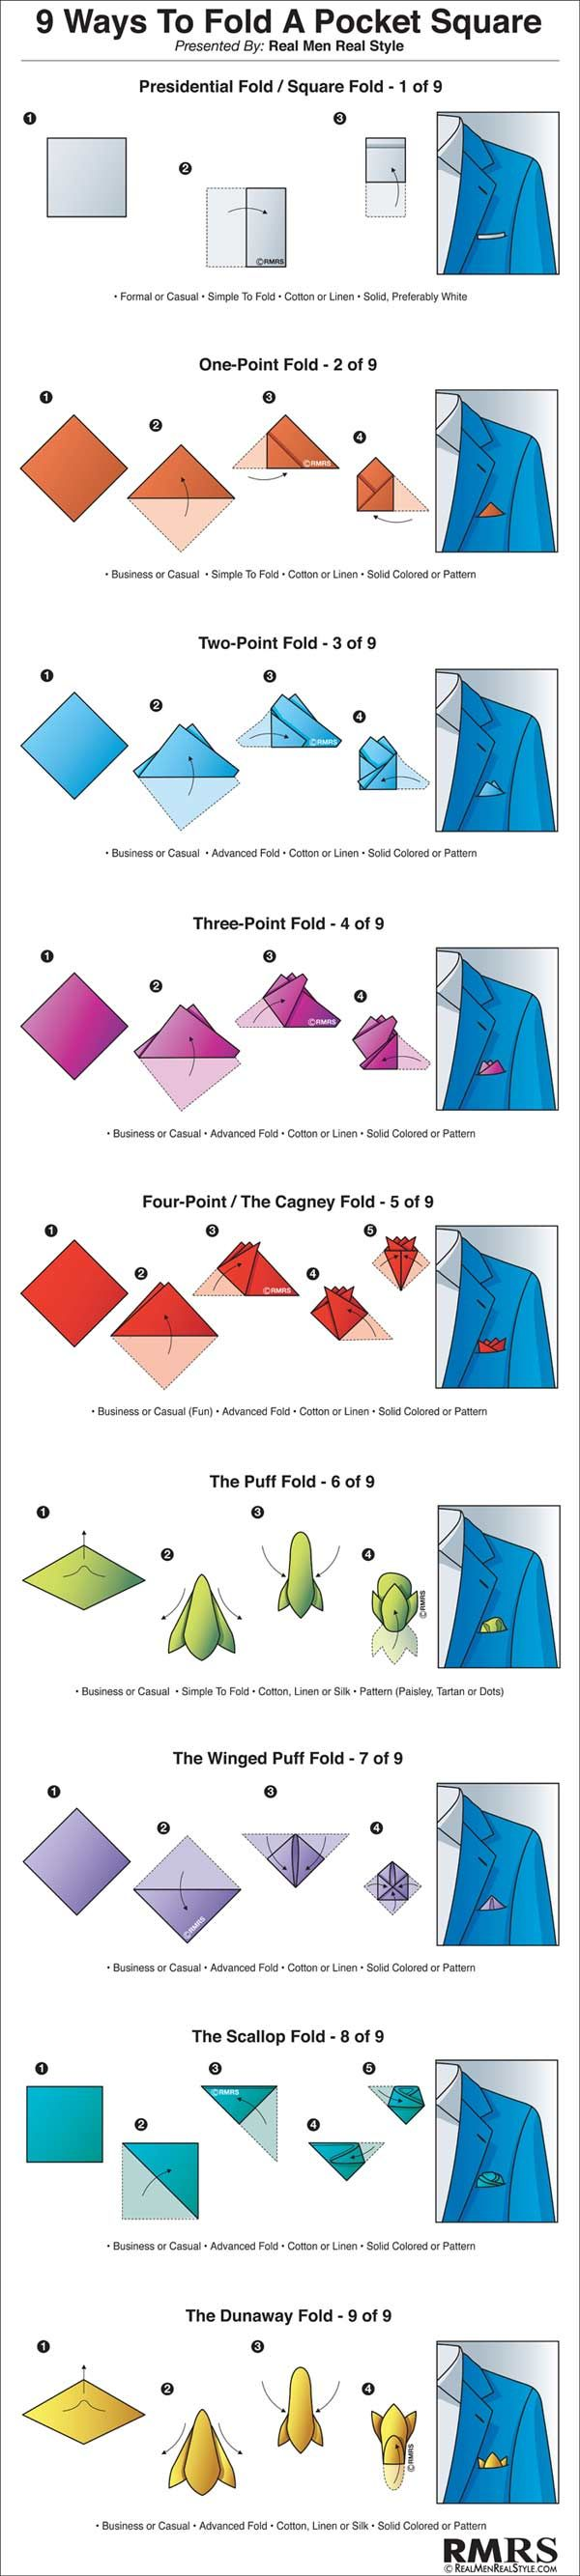 9 Ways to Fold a Pocket Square Infographic